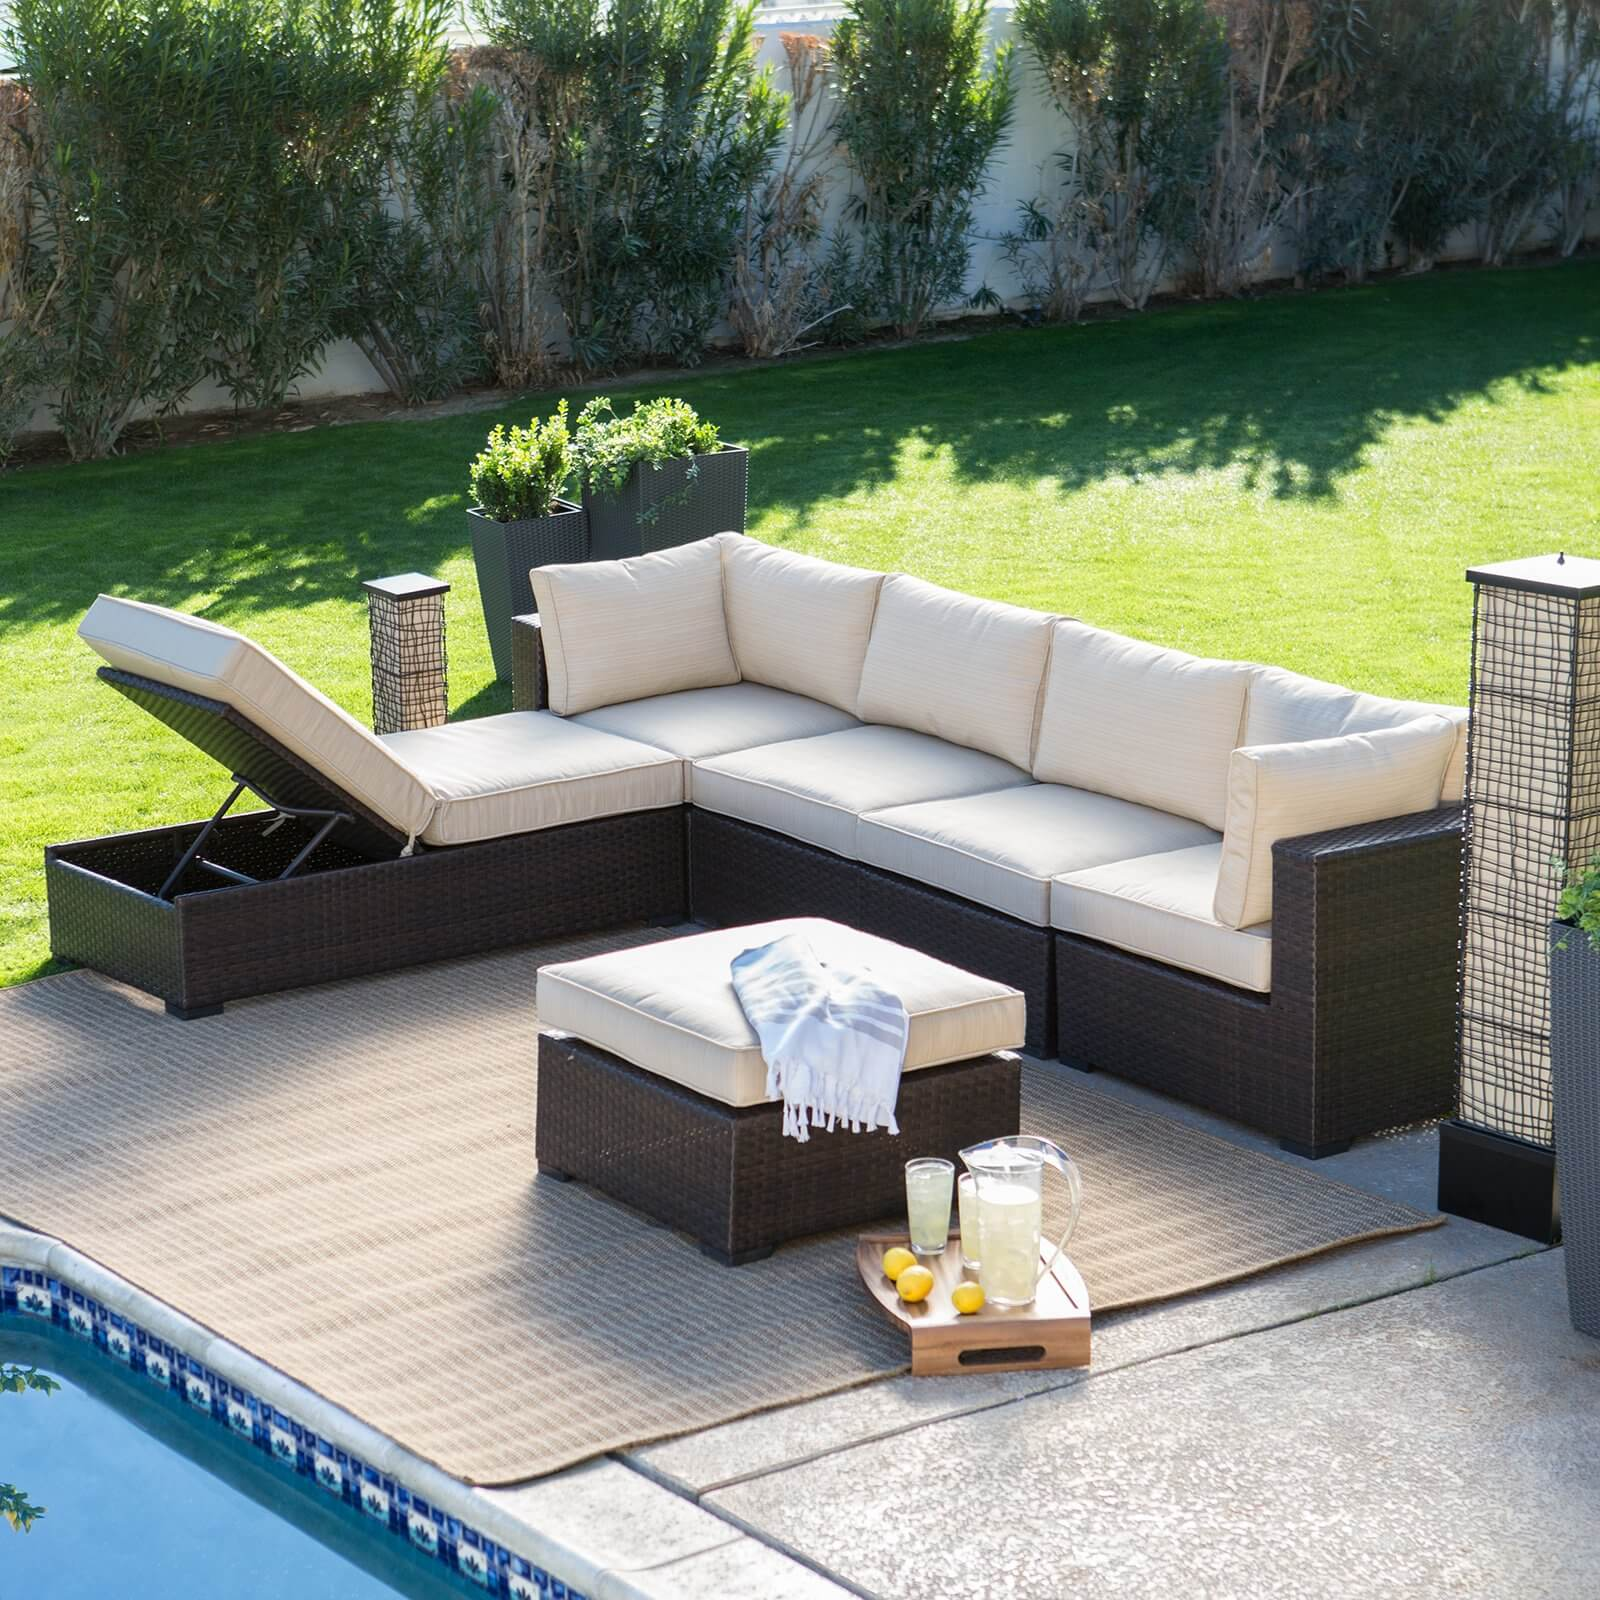 25 Awesome Modern Brown All Weather Outdoor Patio Sectionals - Outdoor Wicker Furniture Clearance Nz